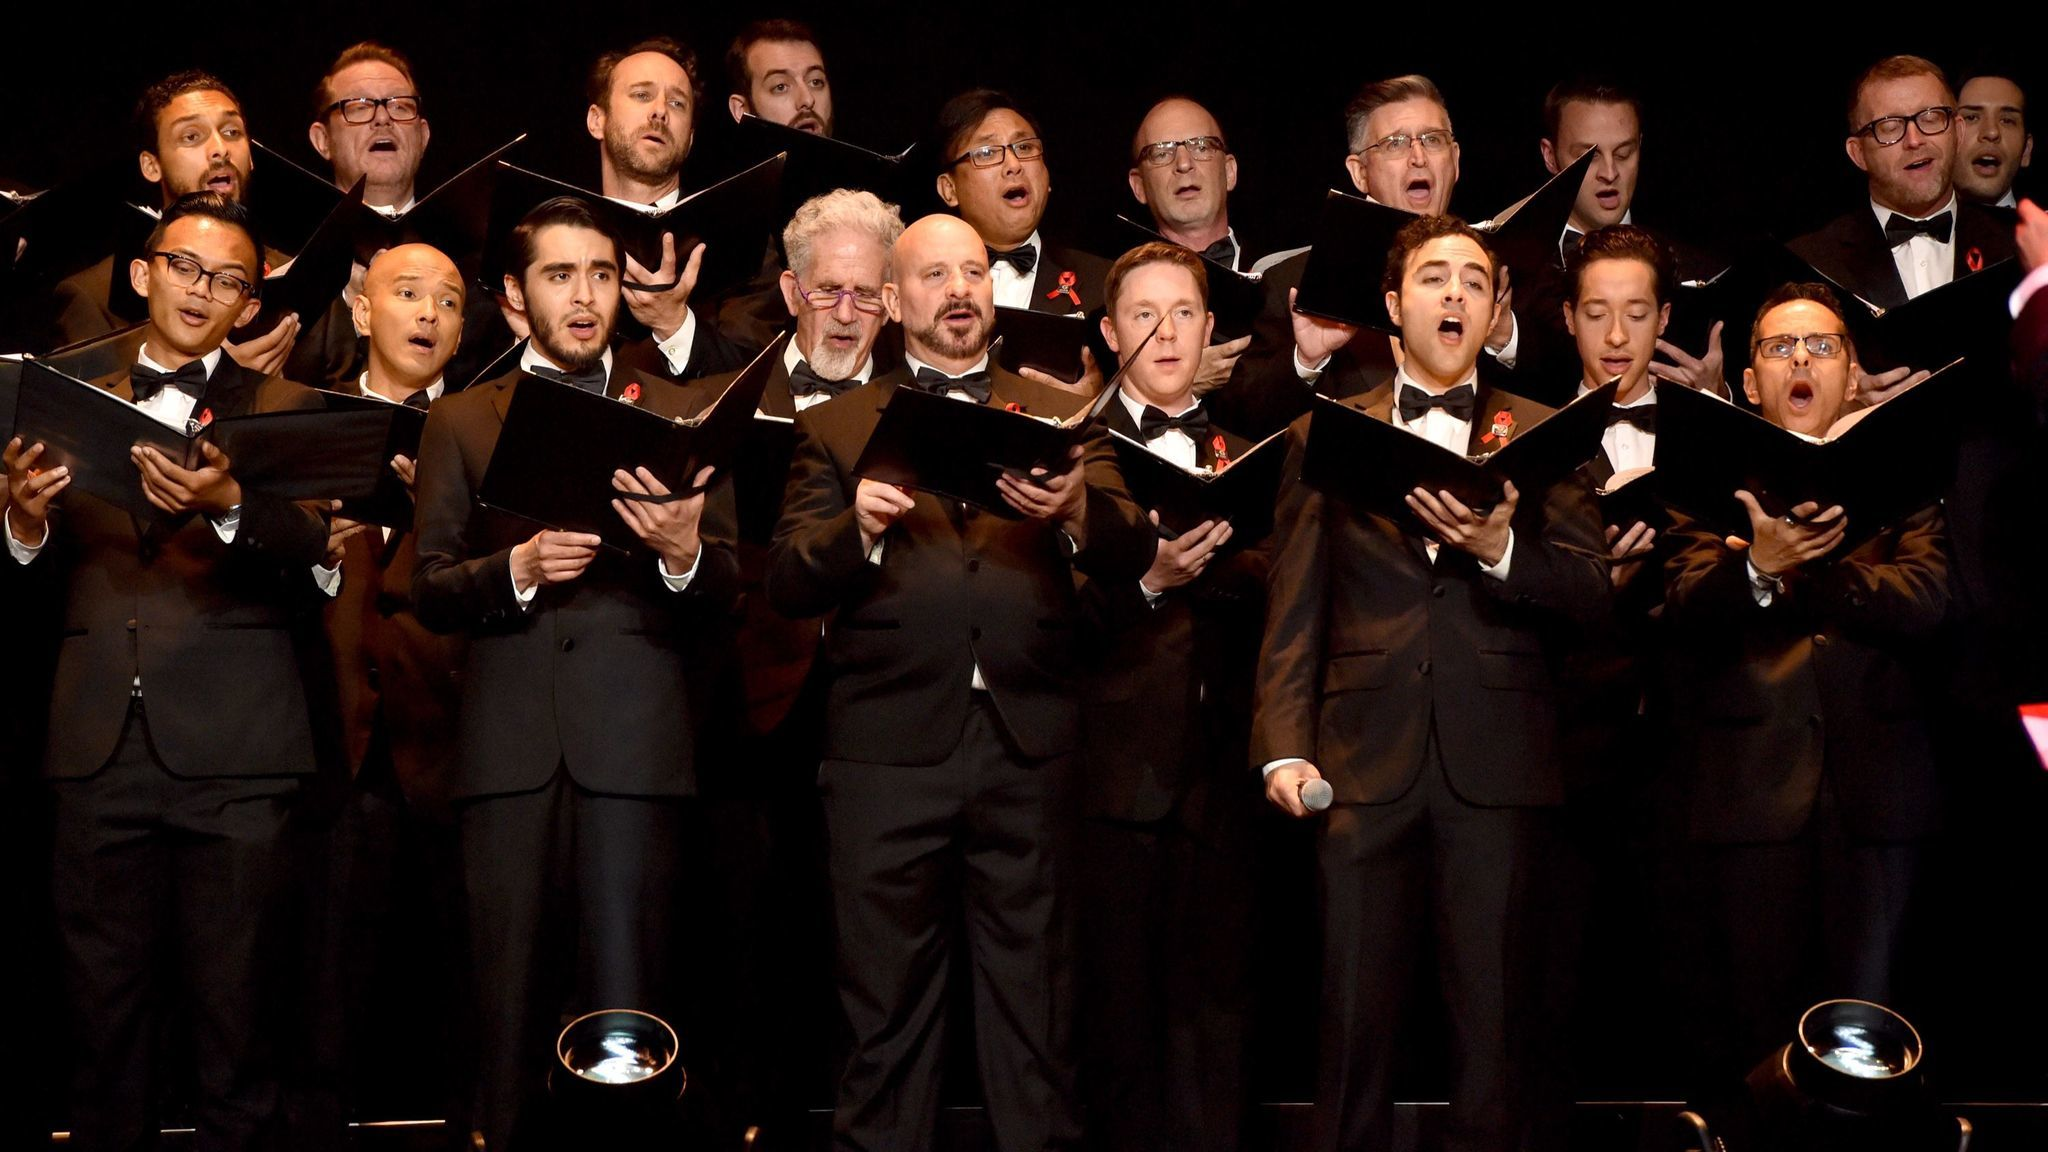 The Gay Men's Chorus of Los Angeles sings a medley of movie music composed by honoree Stephen Schwartz.